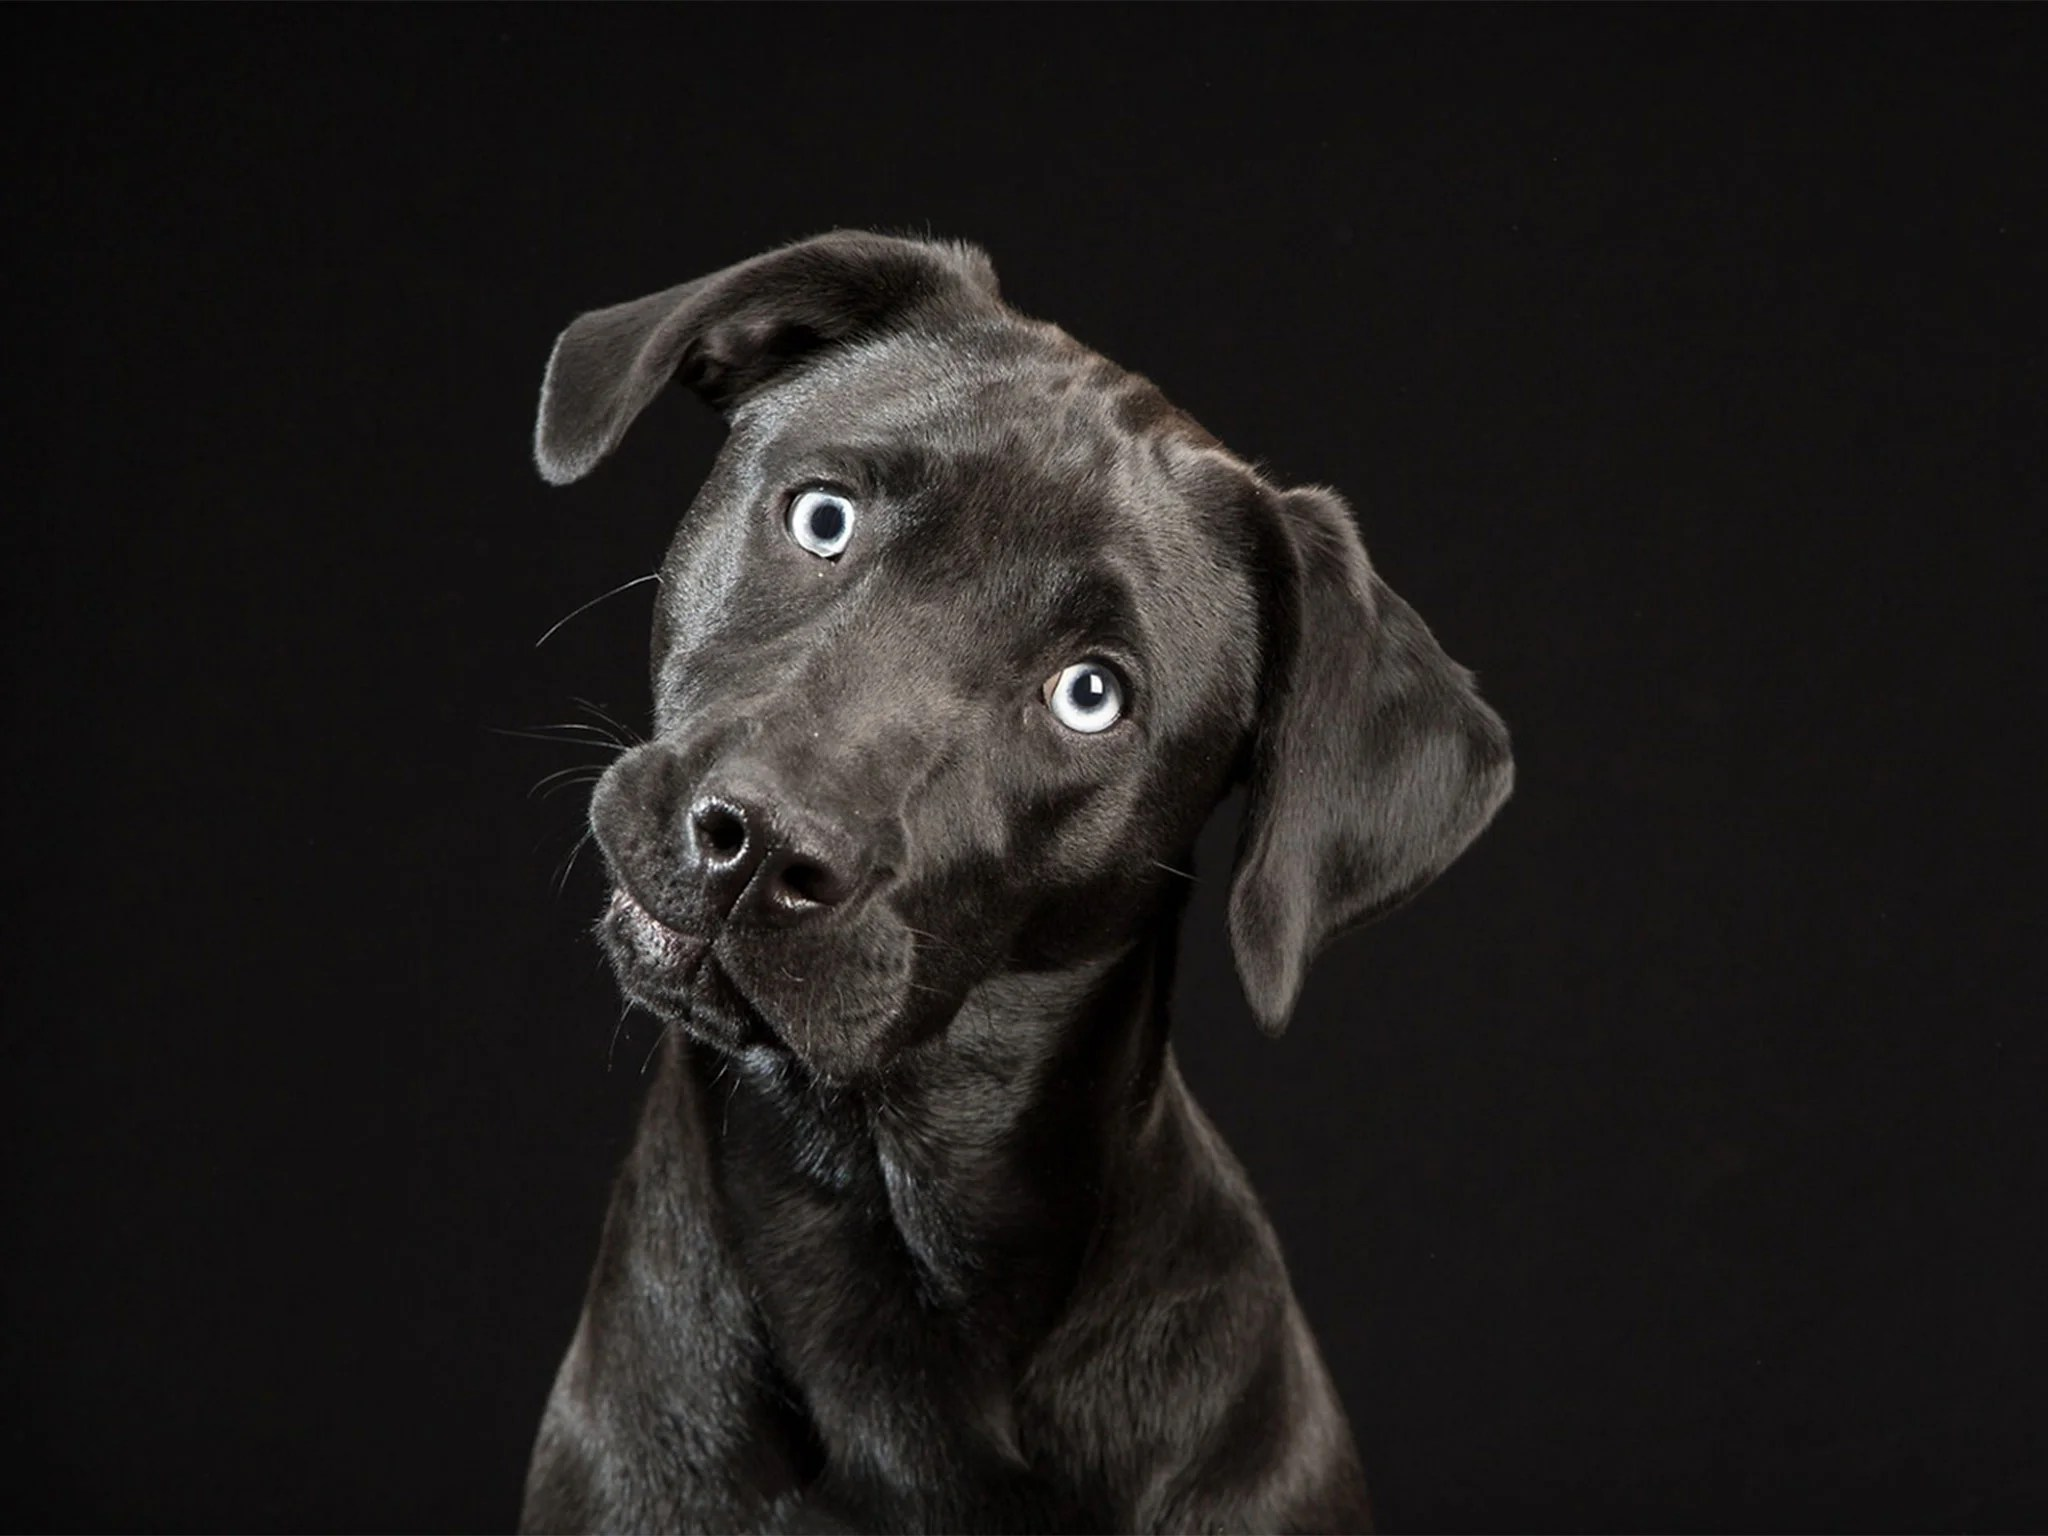 Black Lab Fall Wallpaper Black Dogs Project Photographer Unveils Gallery Of Dark